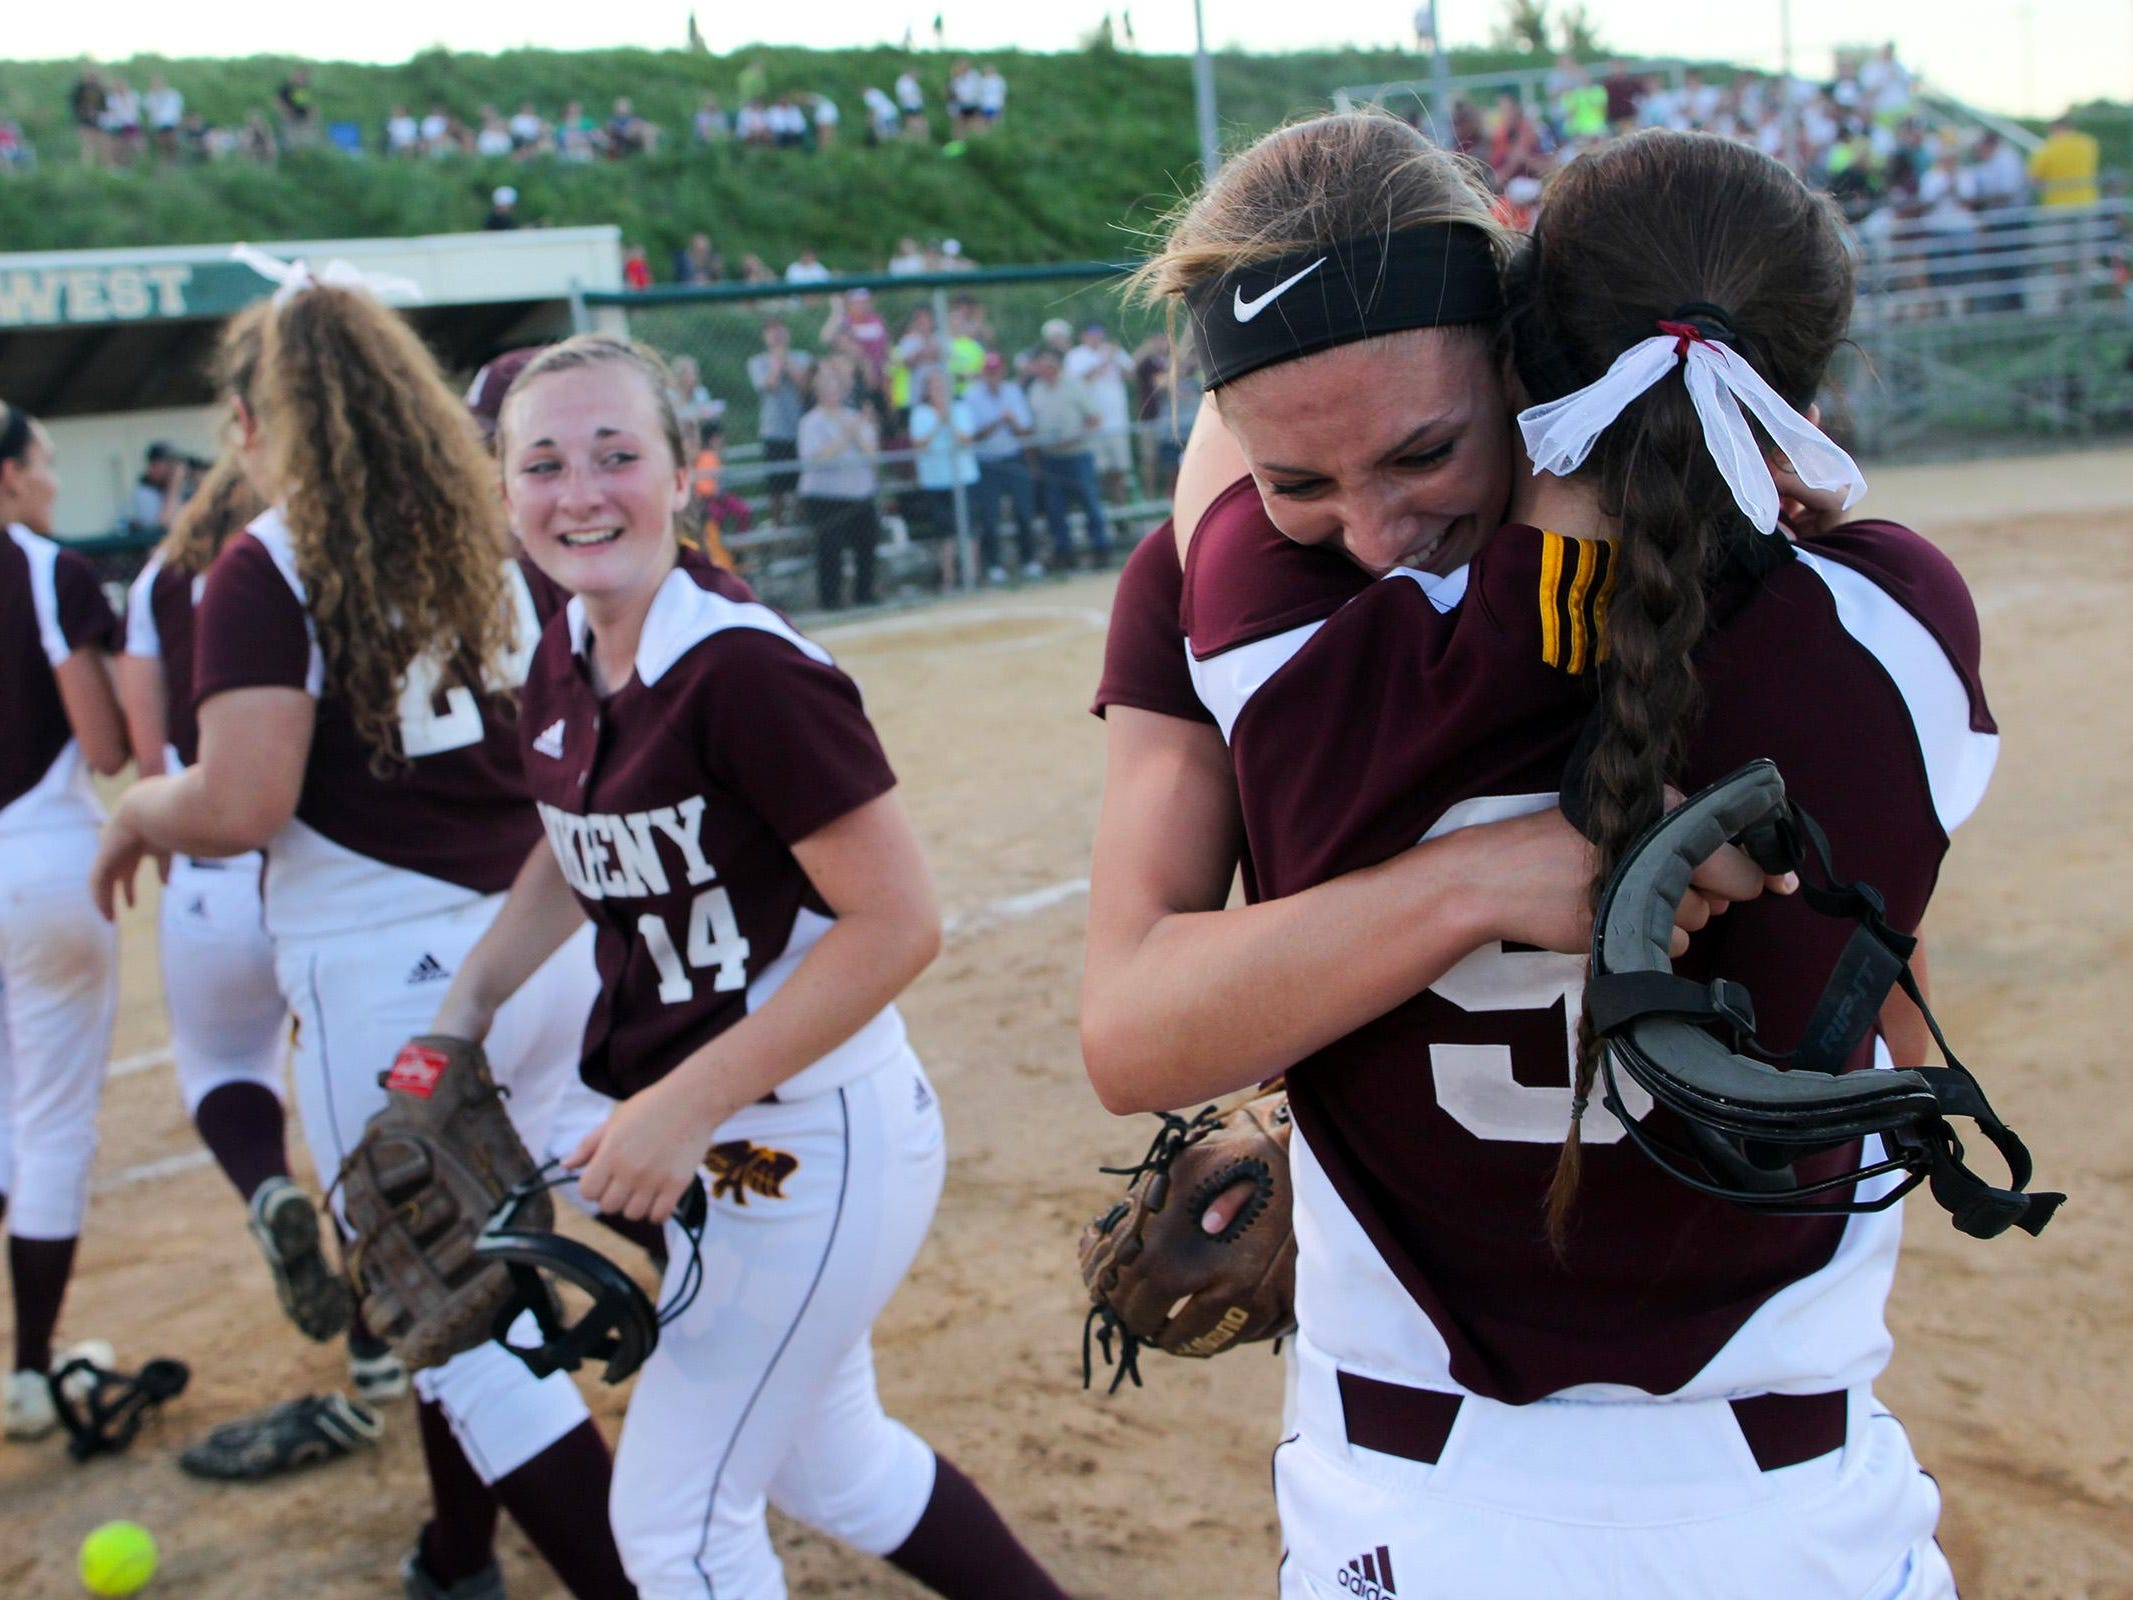 Ankeny pitcher Allison Doocy gets a hug from Olivia Brooks (9) following the Hawkettes' Class 5A regional championship game at West High on Tuesday, July 14, 2015. Ankeny won, 3-1, to head to state. David Scrivner / Iowa City Press-Citizen